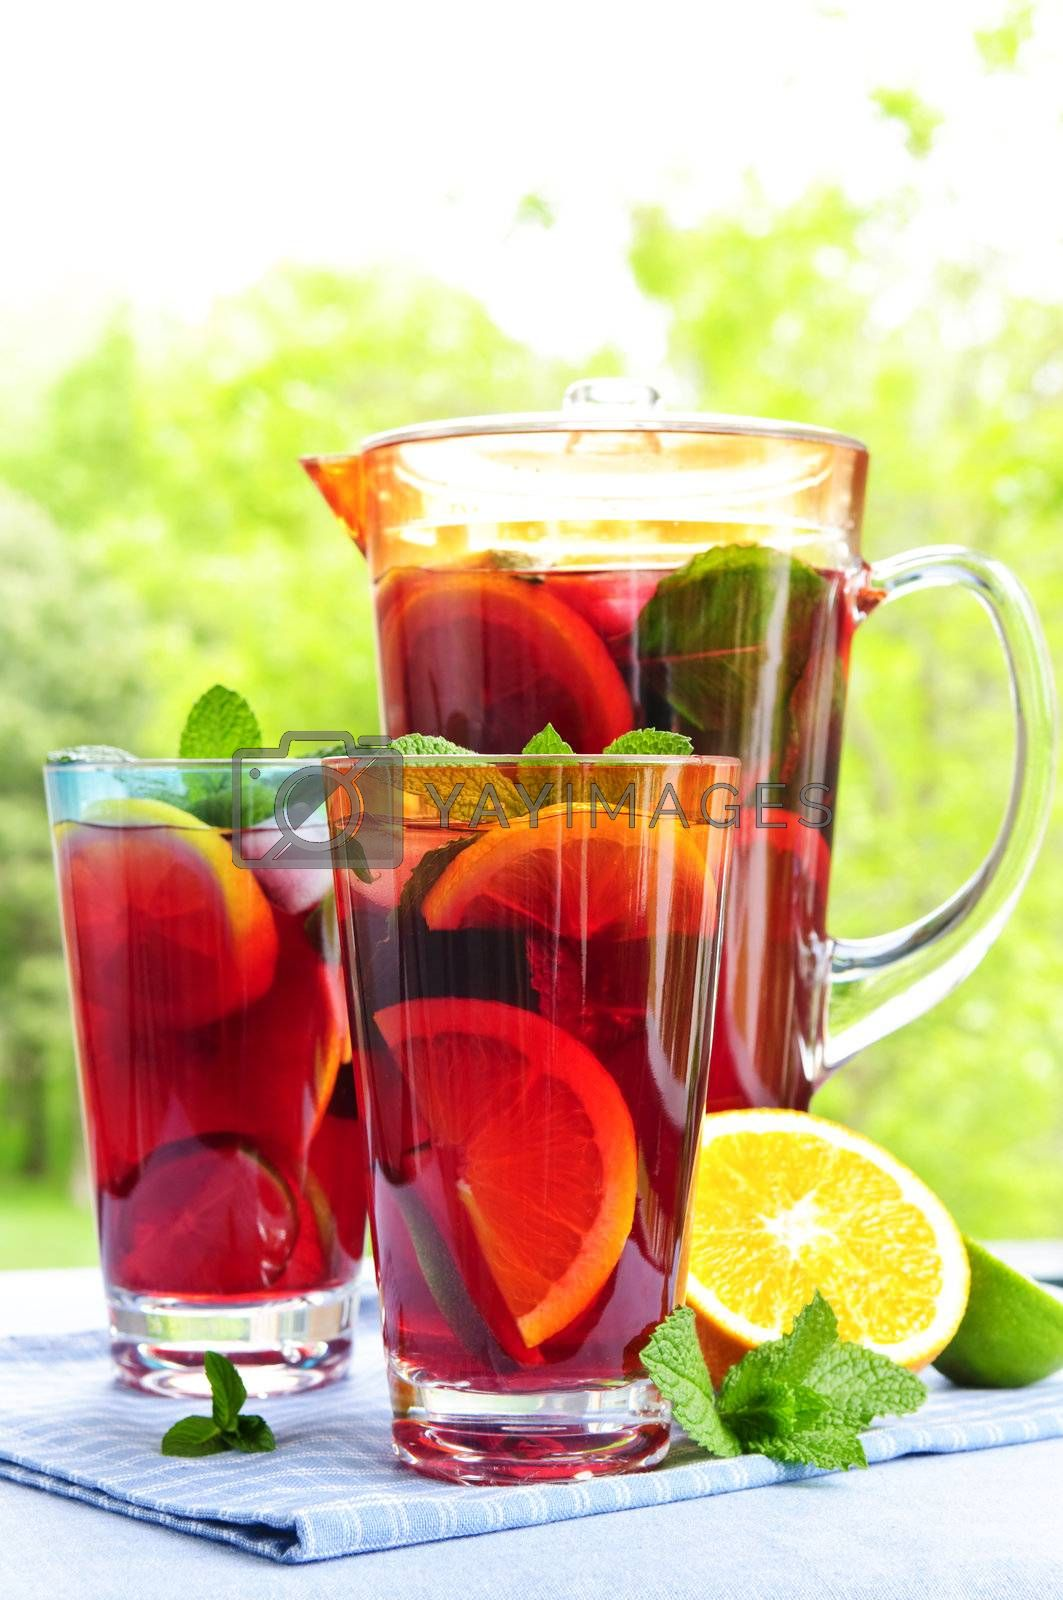 Royalty free image of Fruit punch in pitcher and glasses by elenathewise